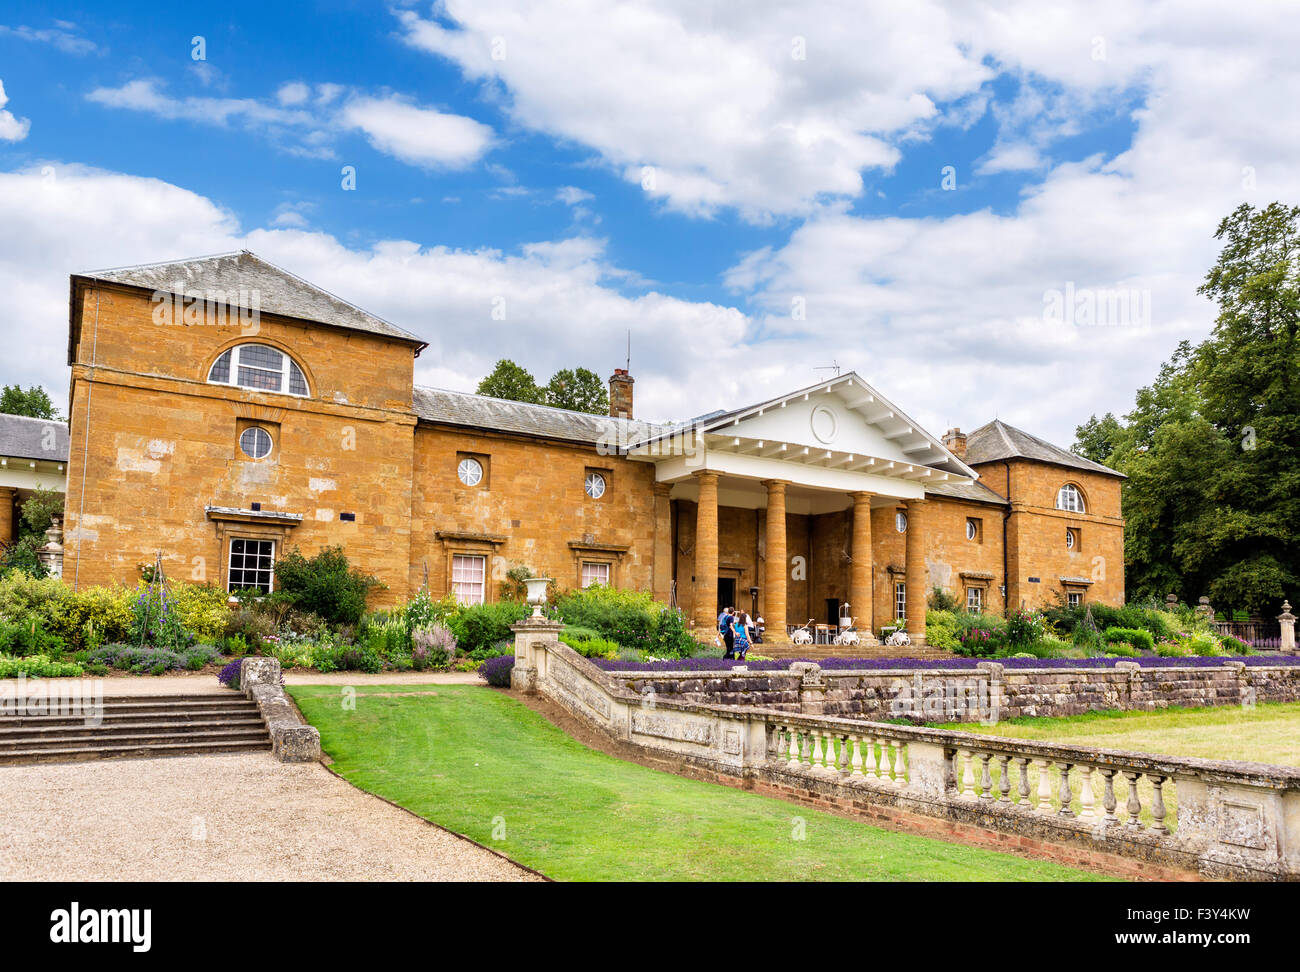 The Stables block, housing the cafe and Spencer Exhibition, Althorp house, Northamptonshire, England, UK - Stock Image